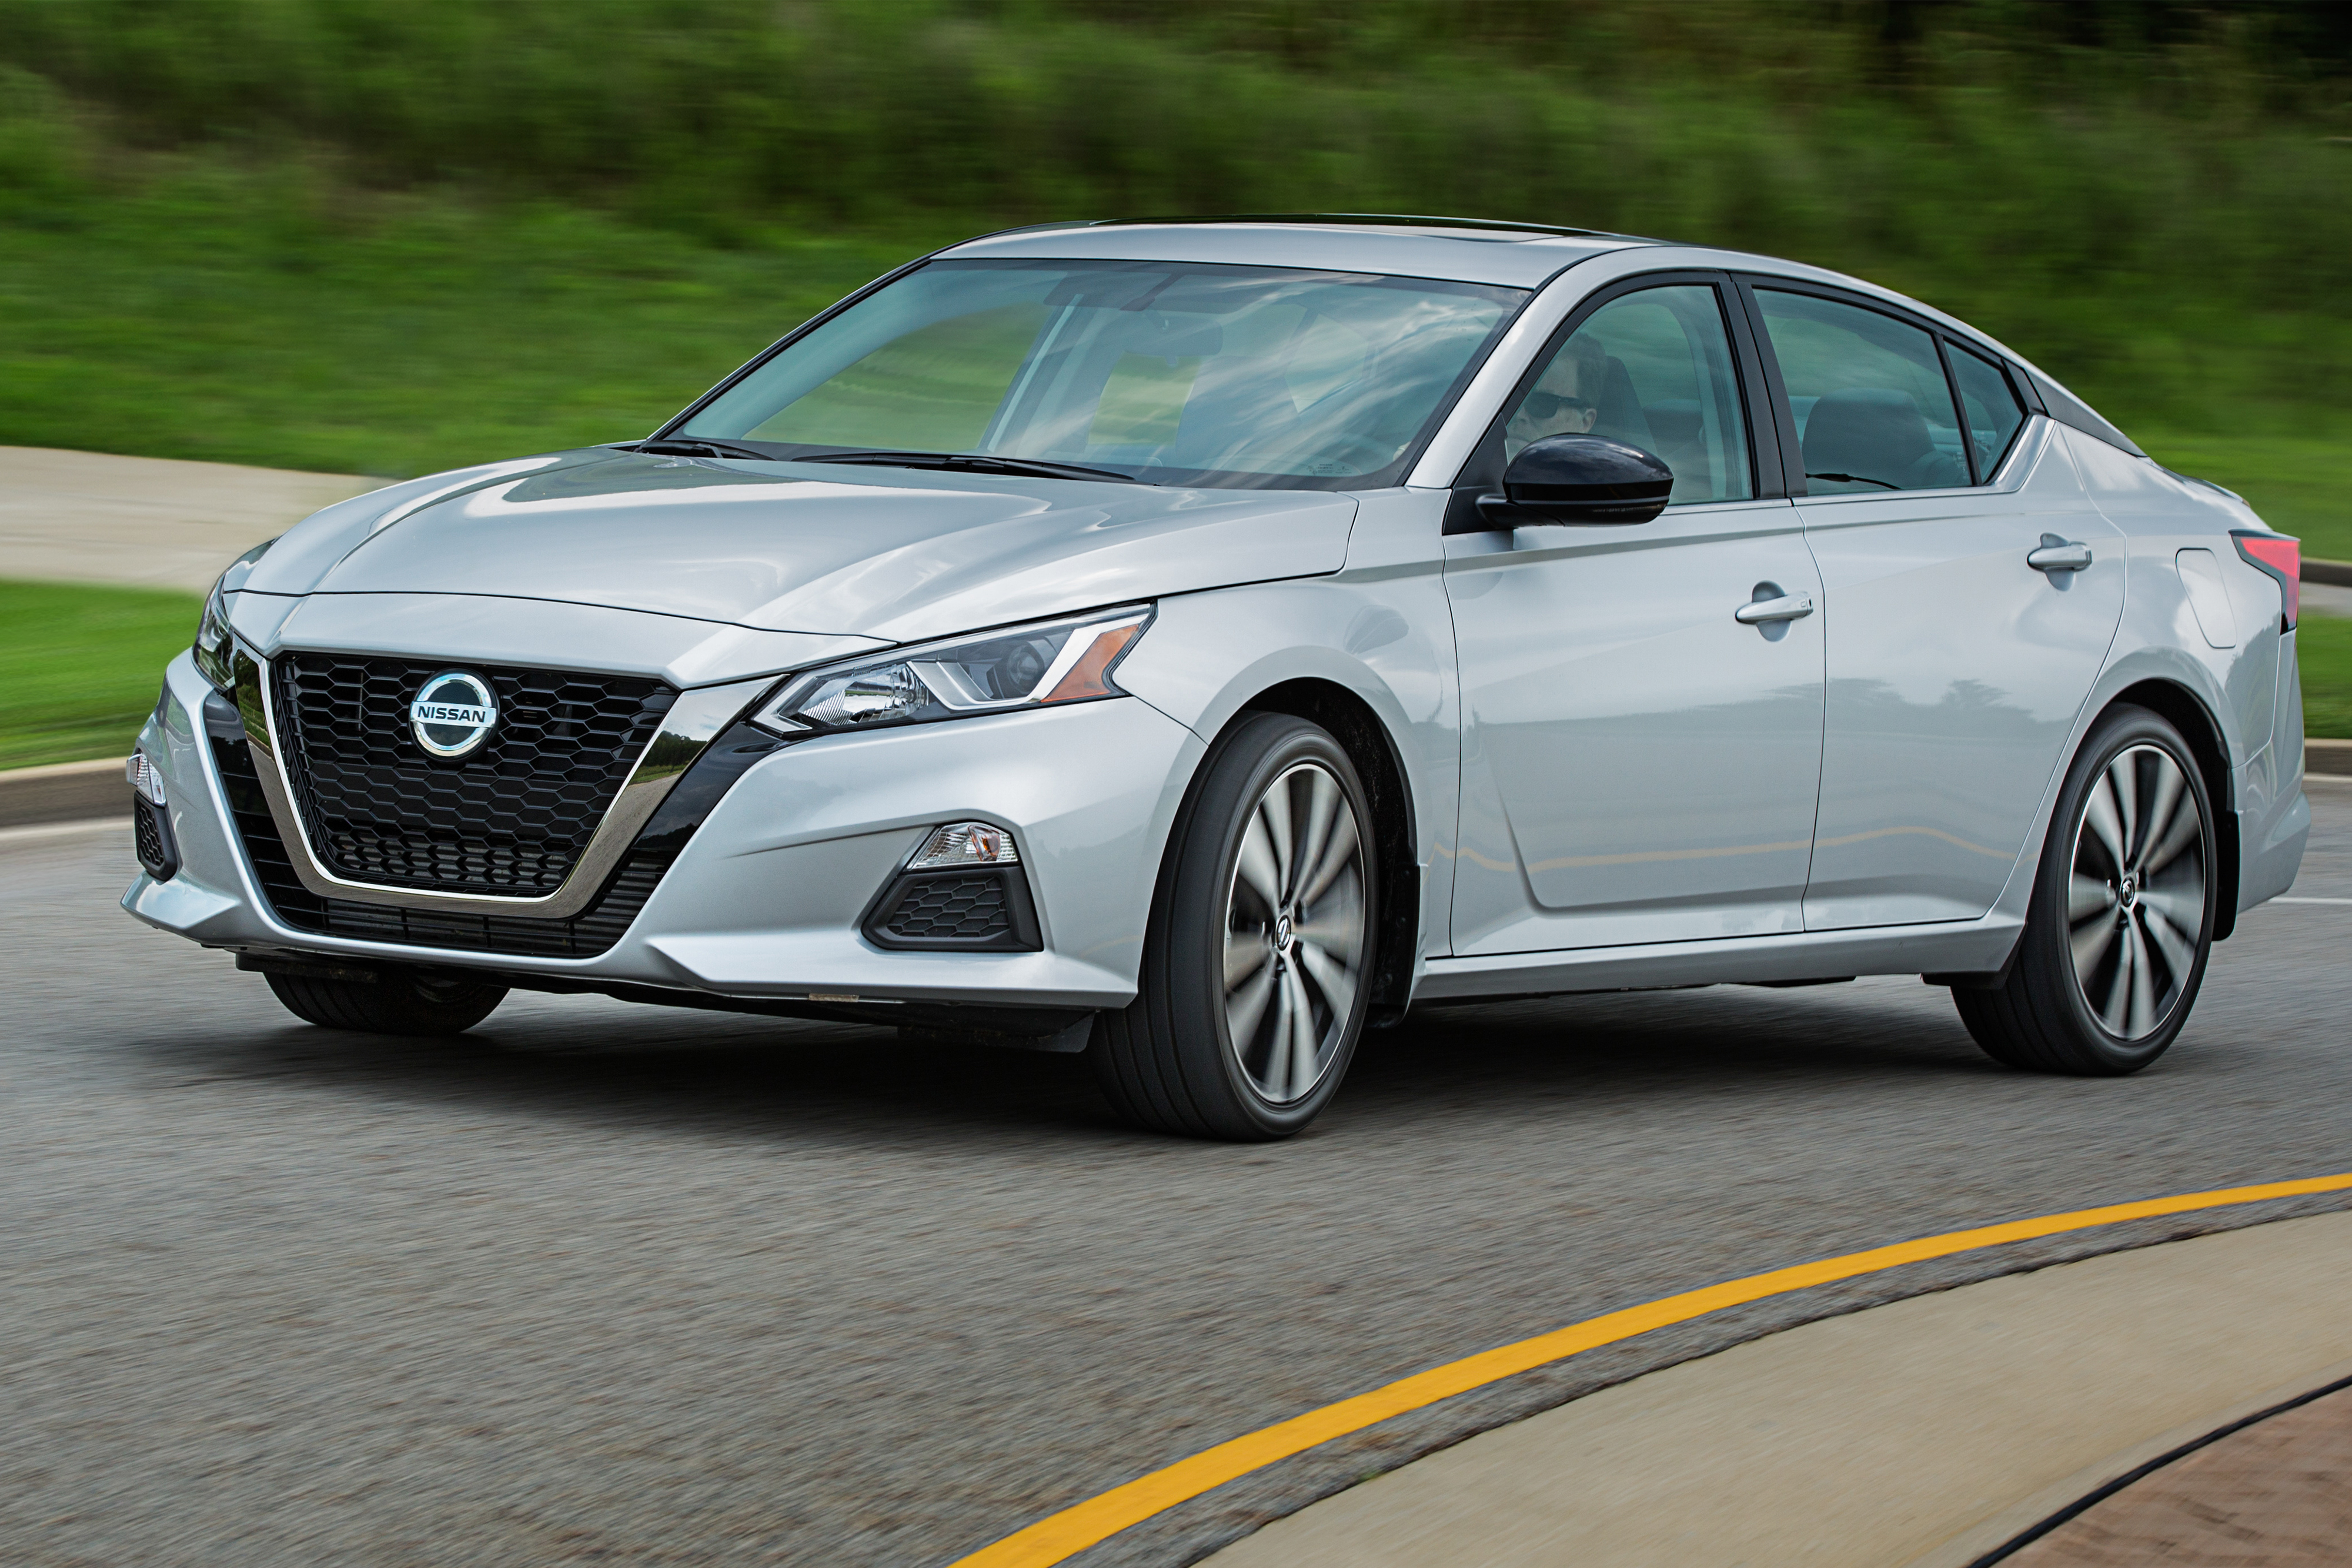 2020 Nissan Altima Gets Small Price Bump, Expanded Safety Tech